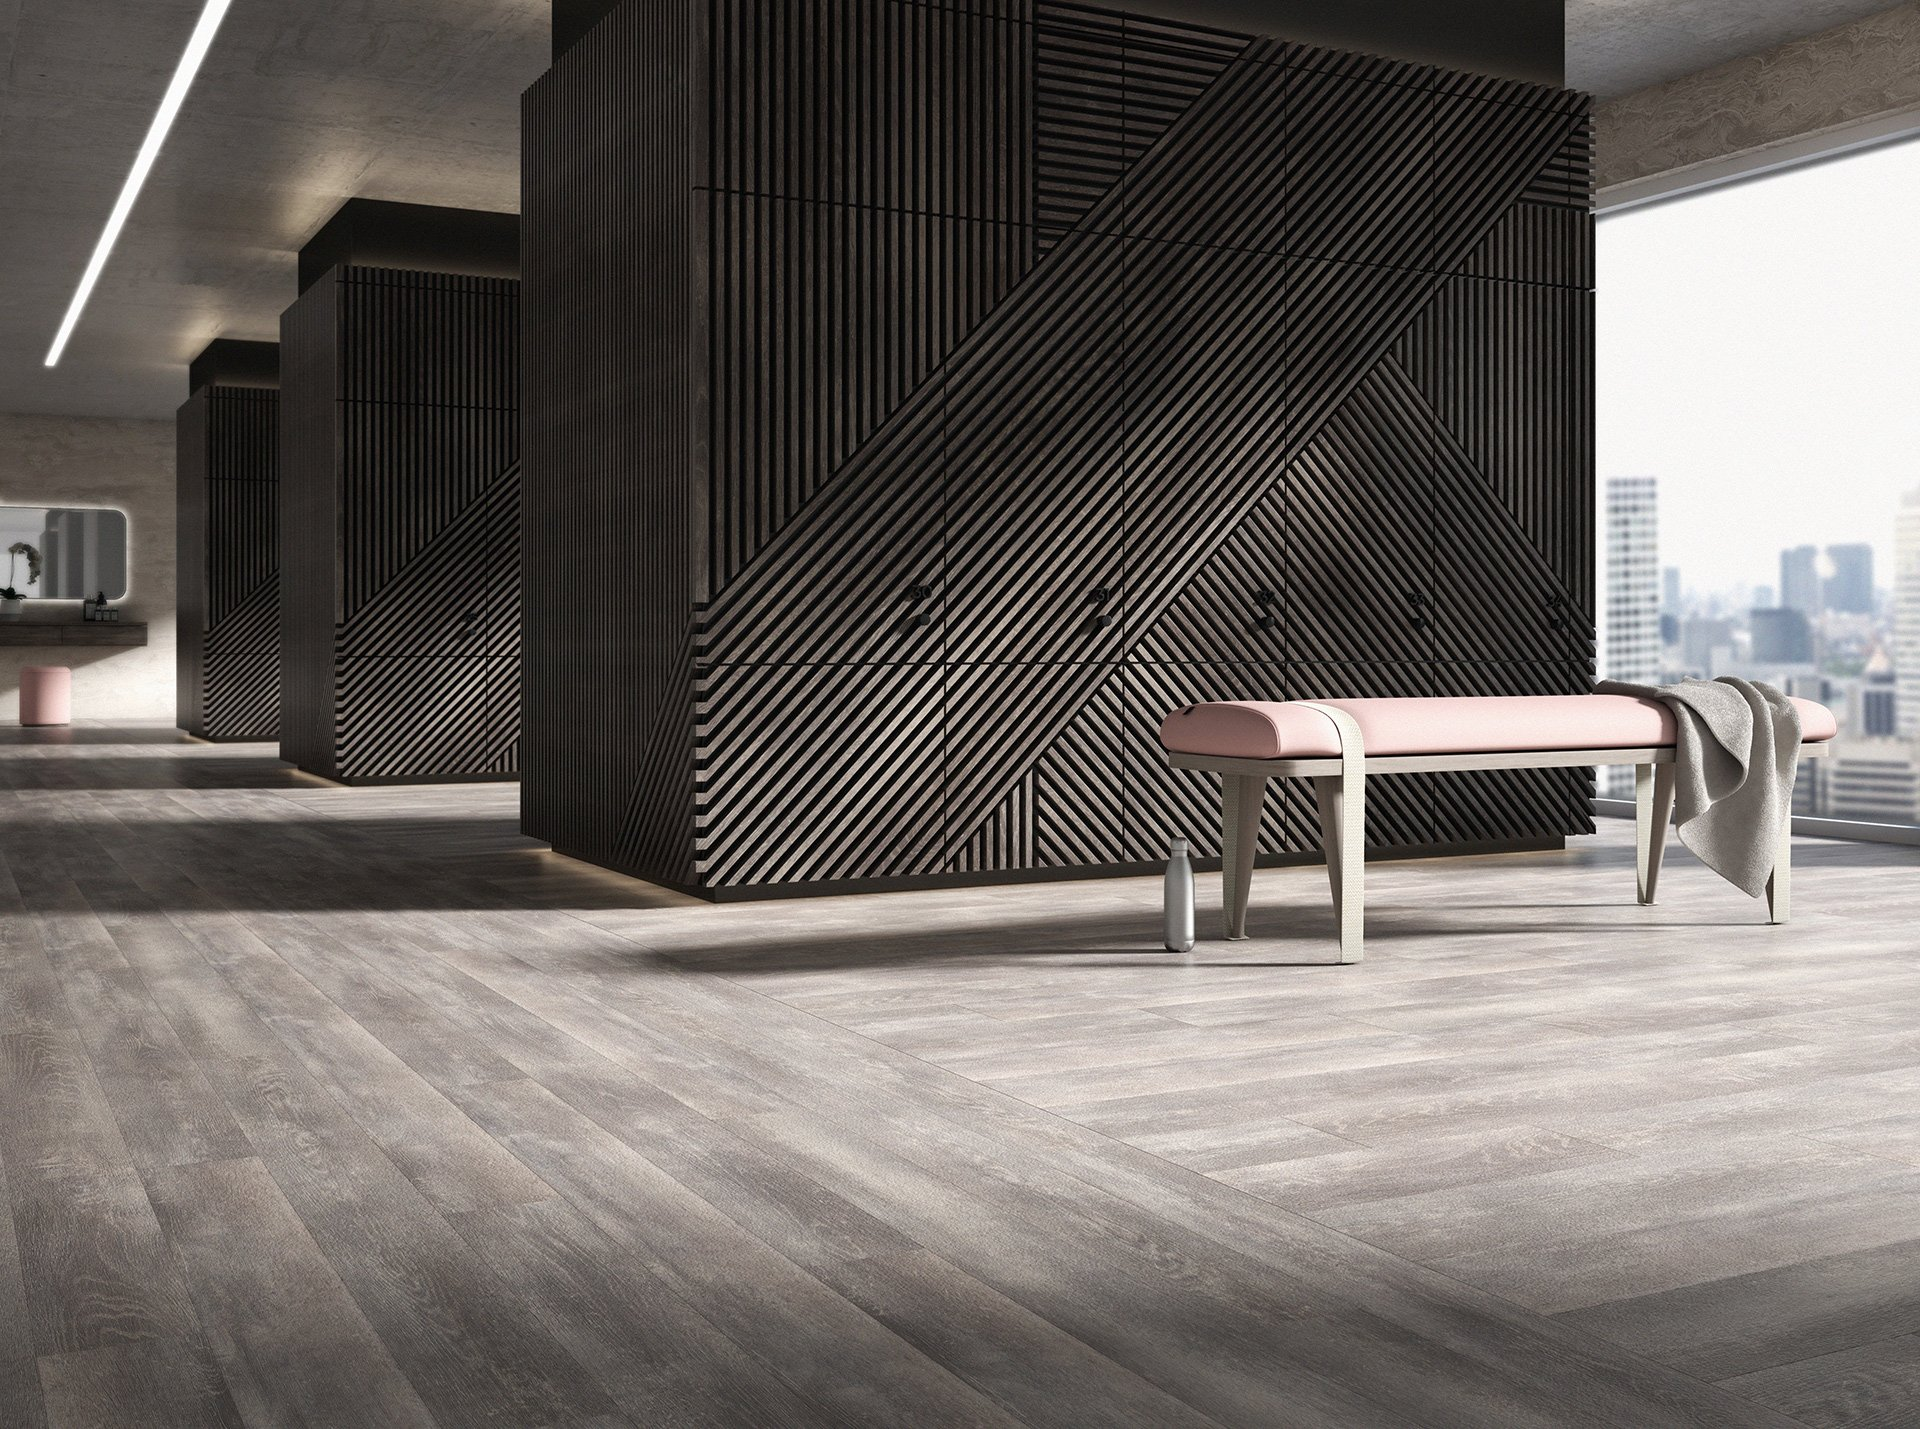 Trendspotting 2020: Materials, Surfaces & Flooring